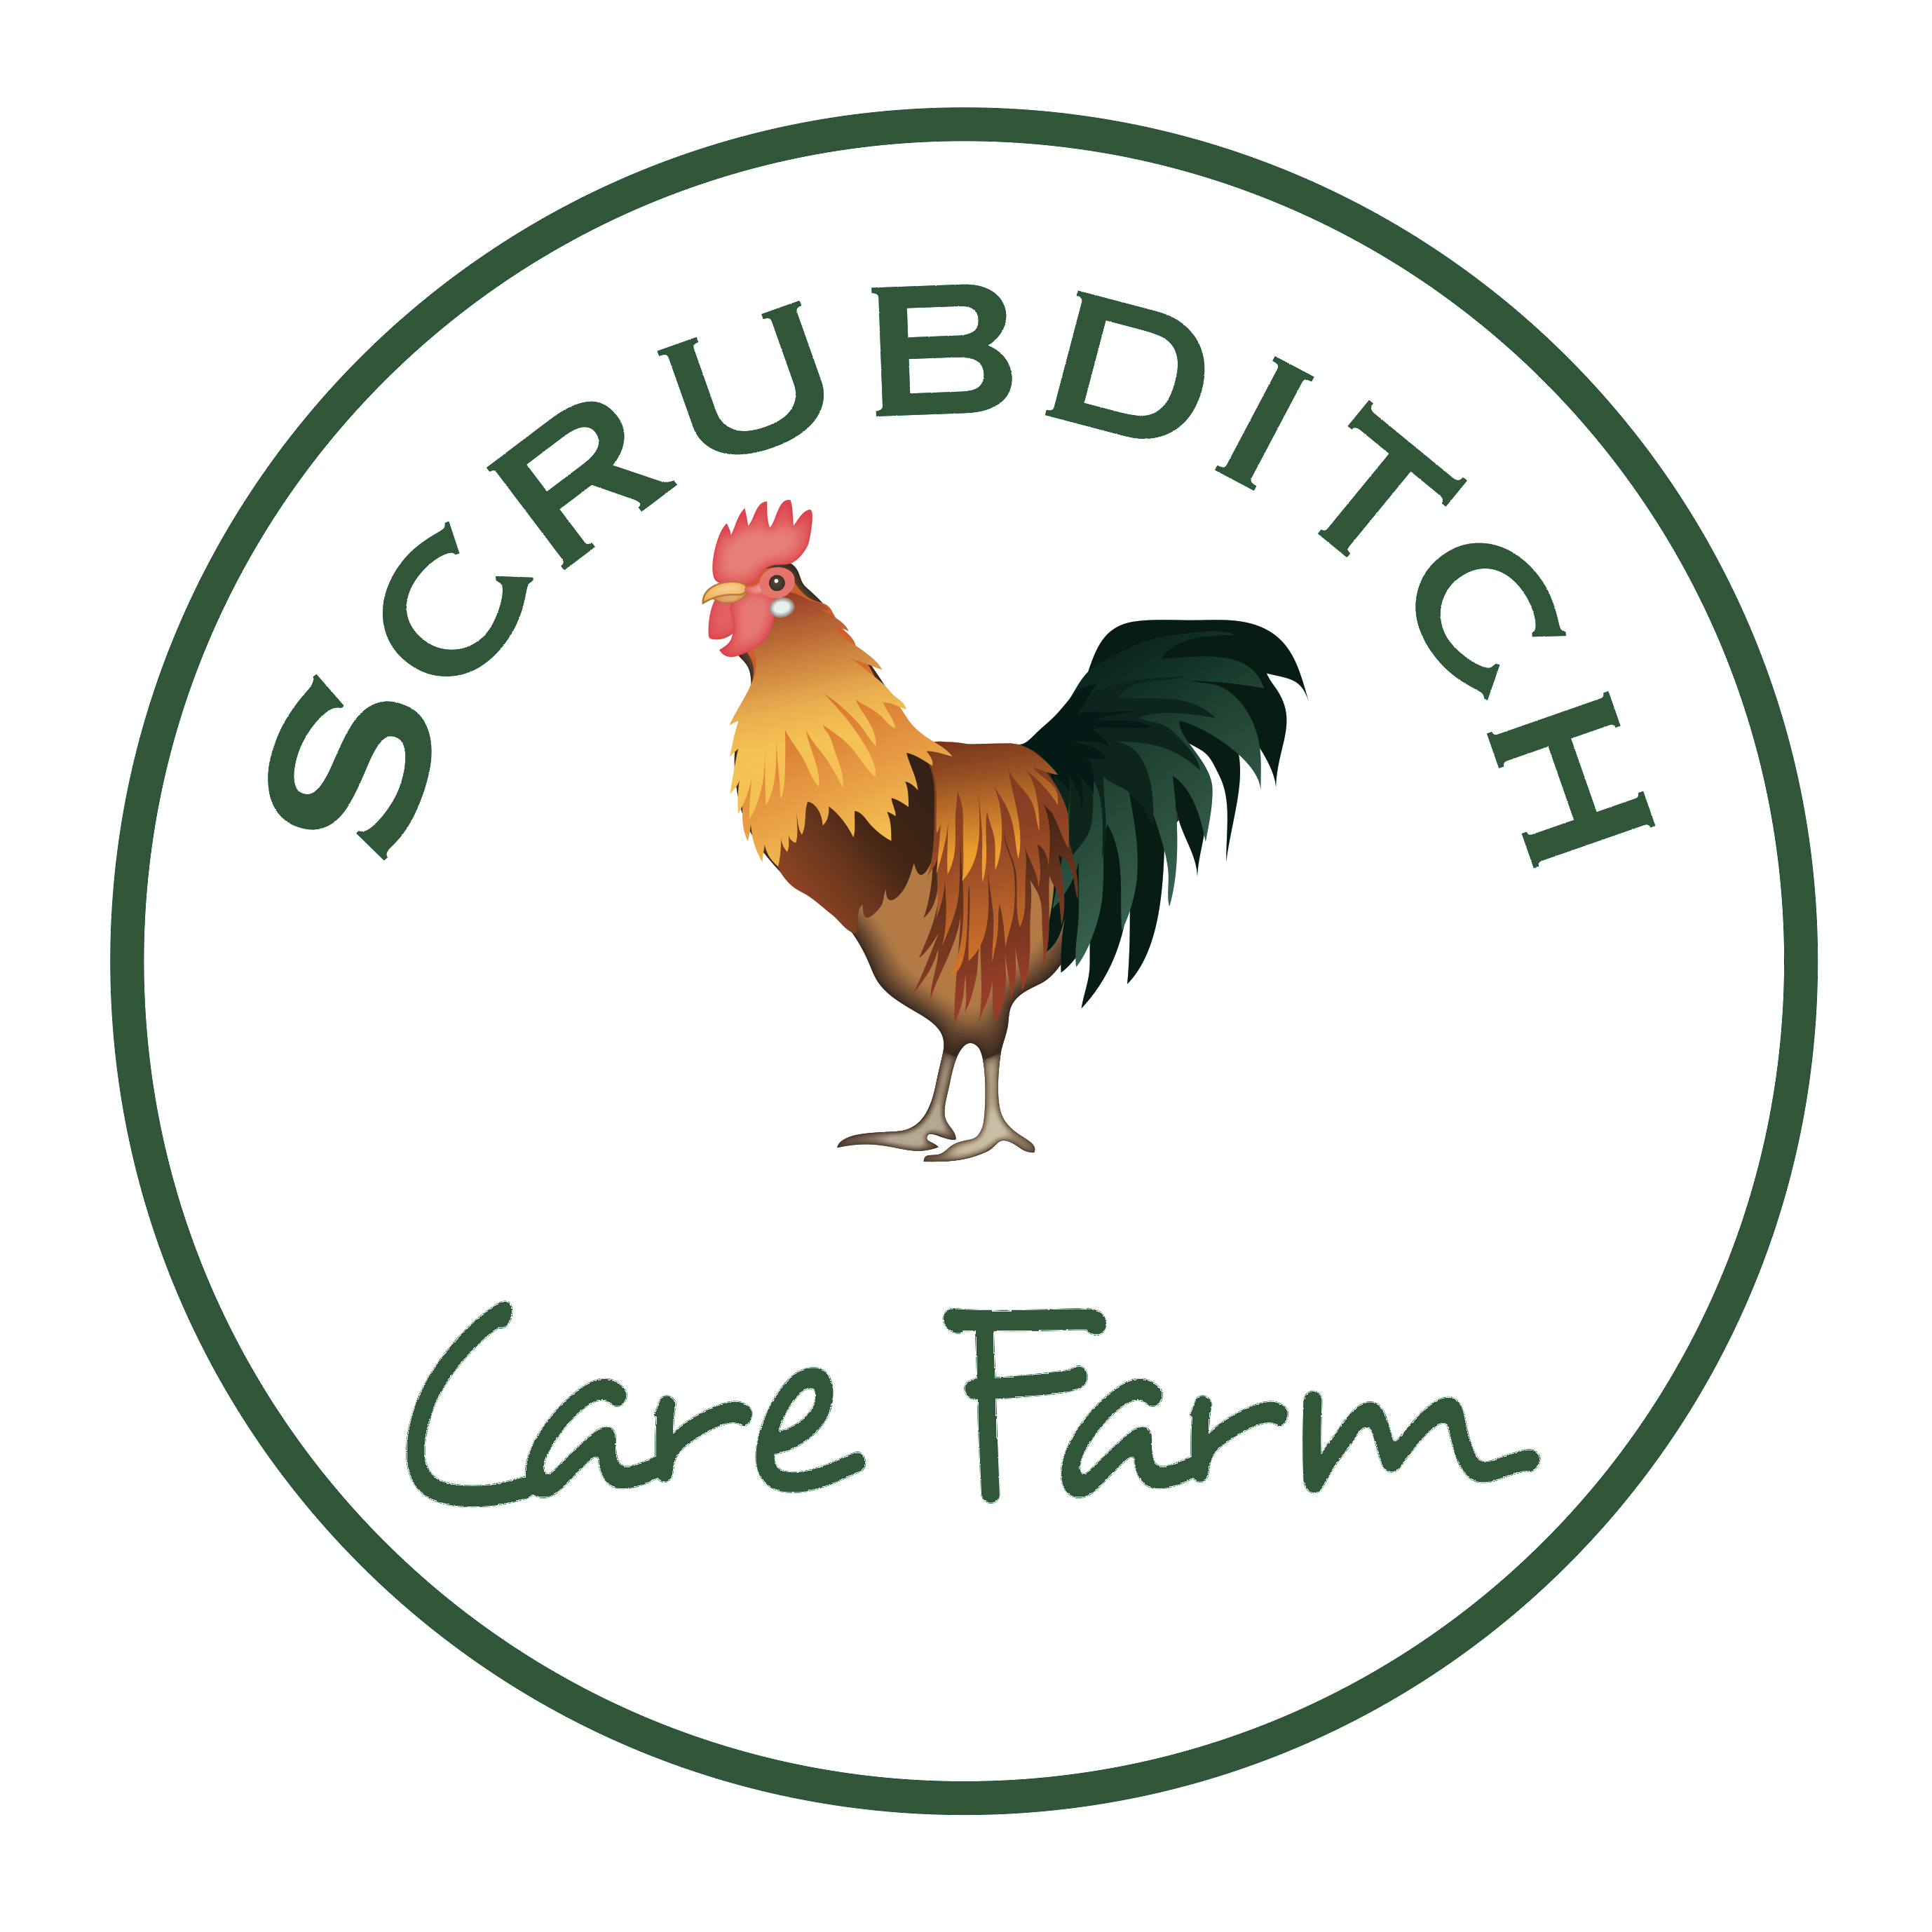 Scrubditch Care Farm